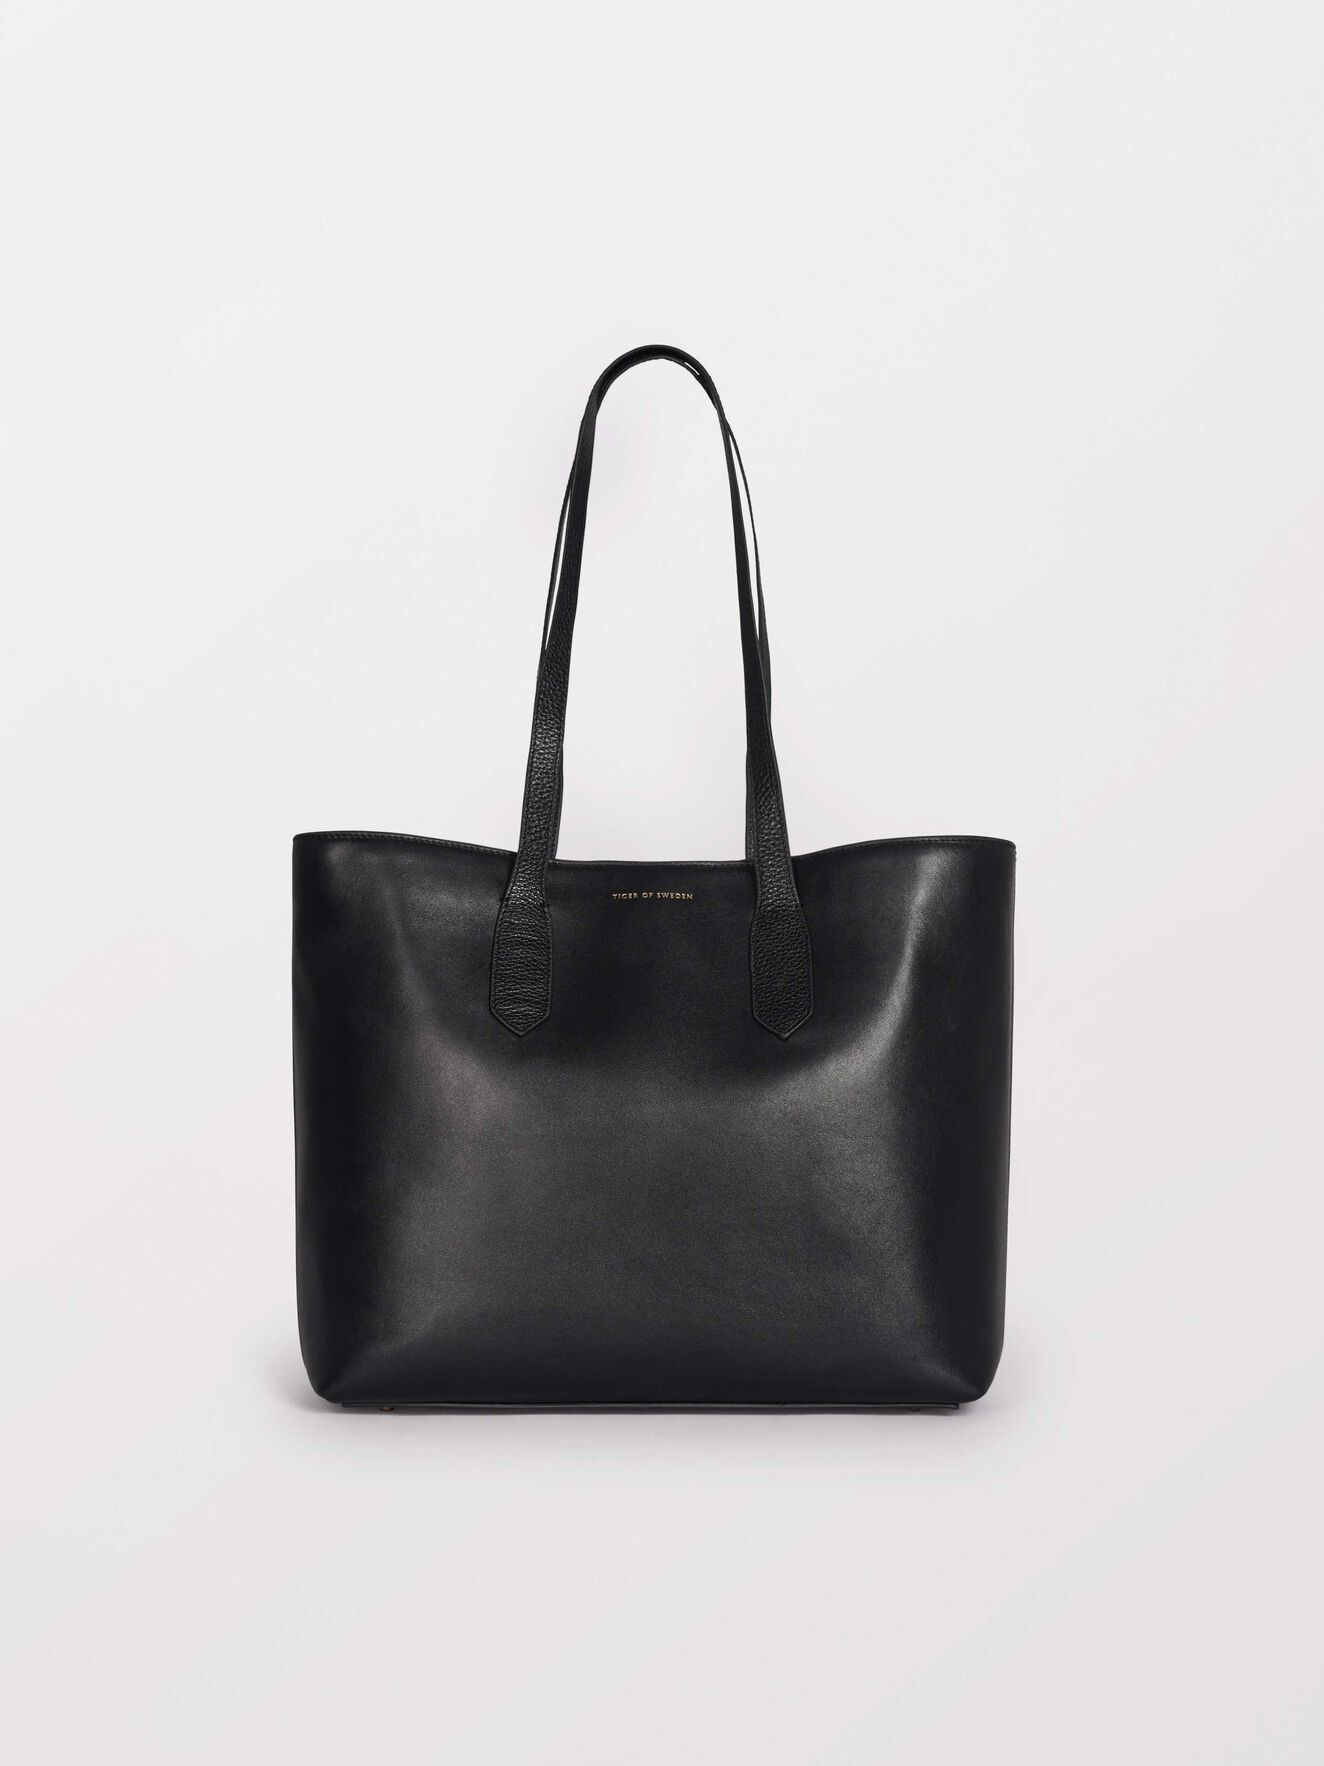 Ornitia Bag in Black from Tiger of Sweden